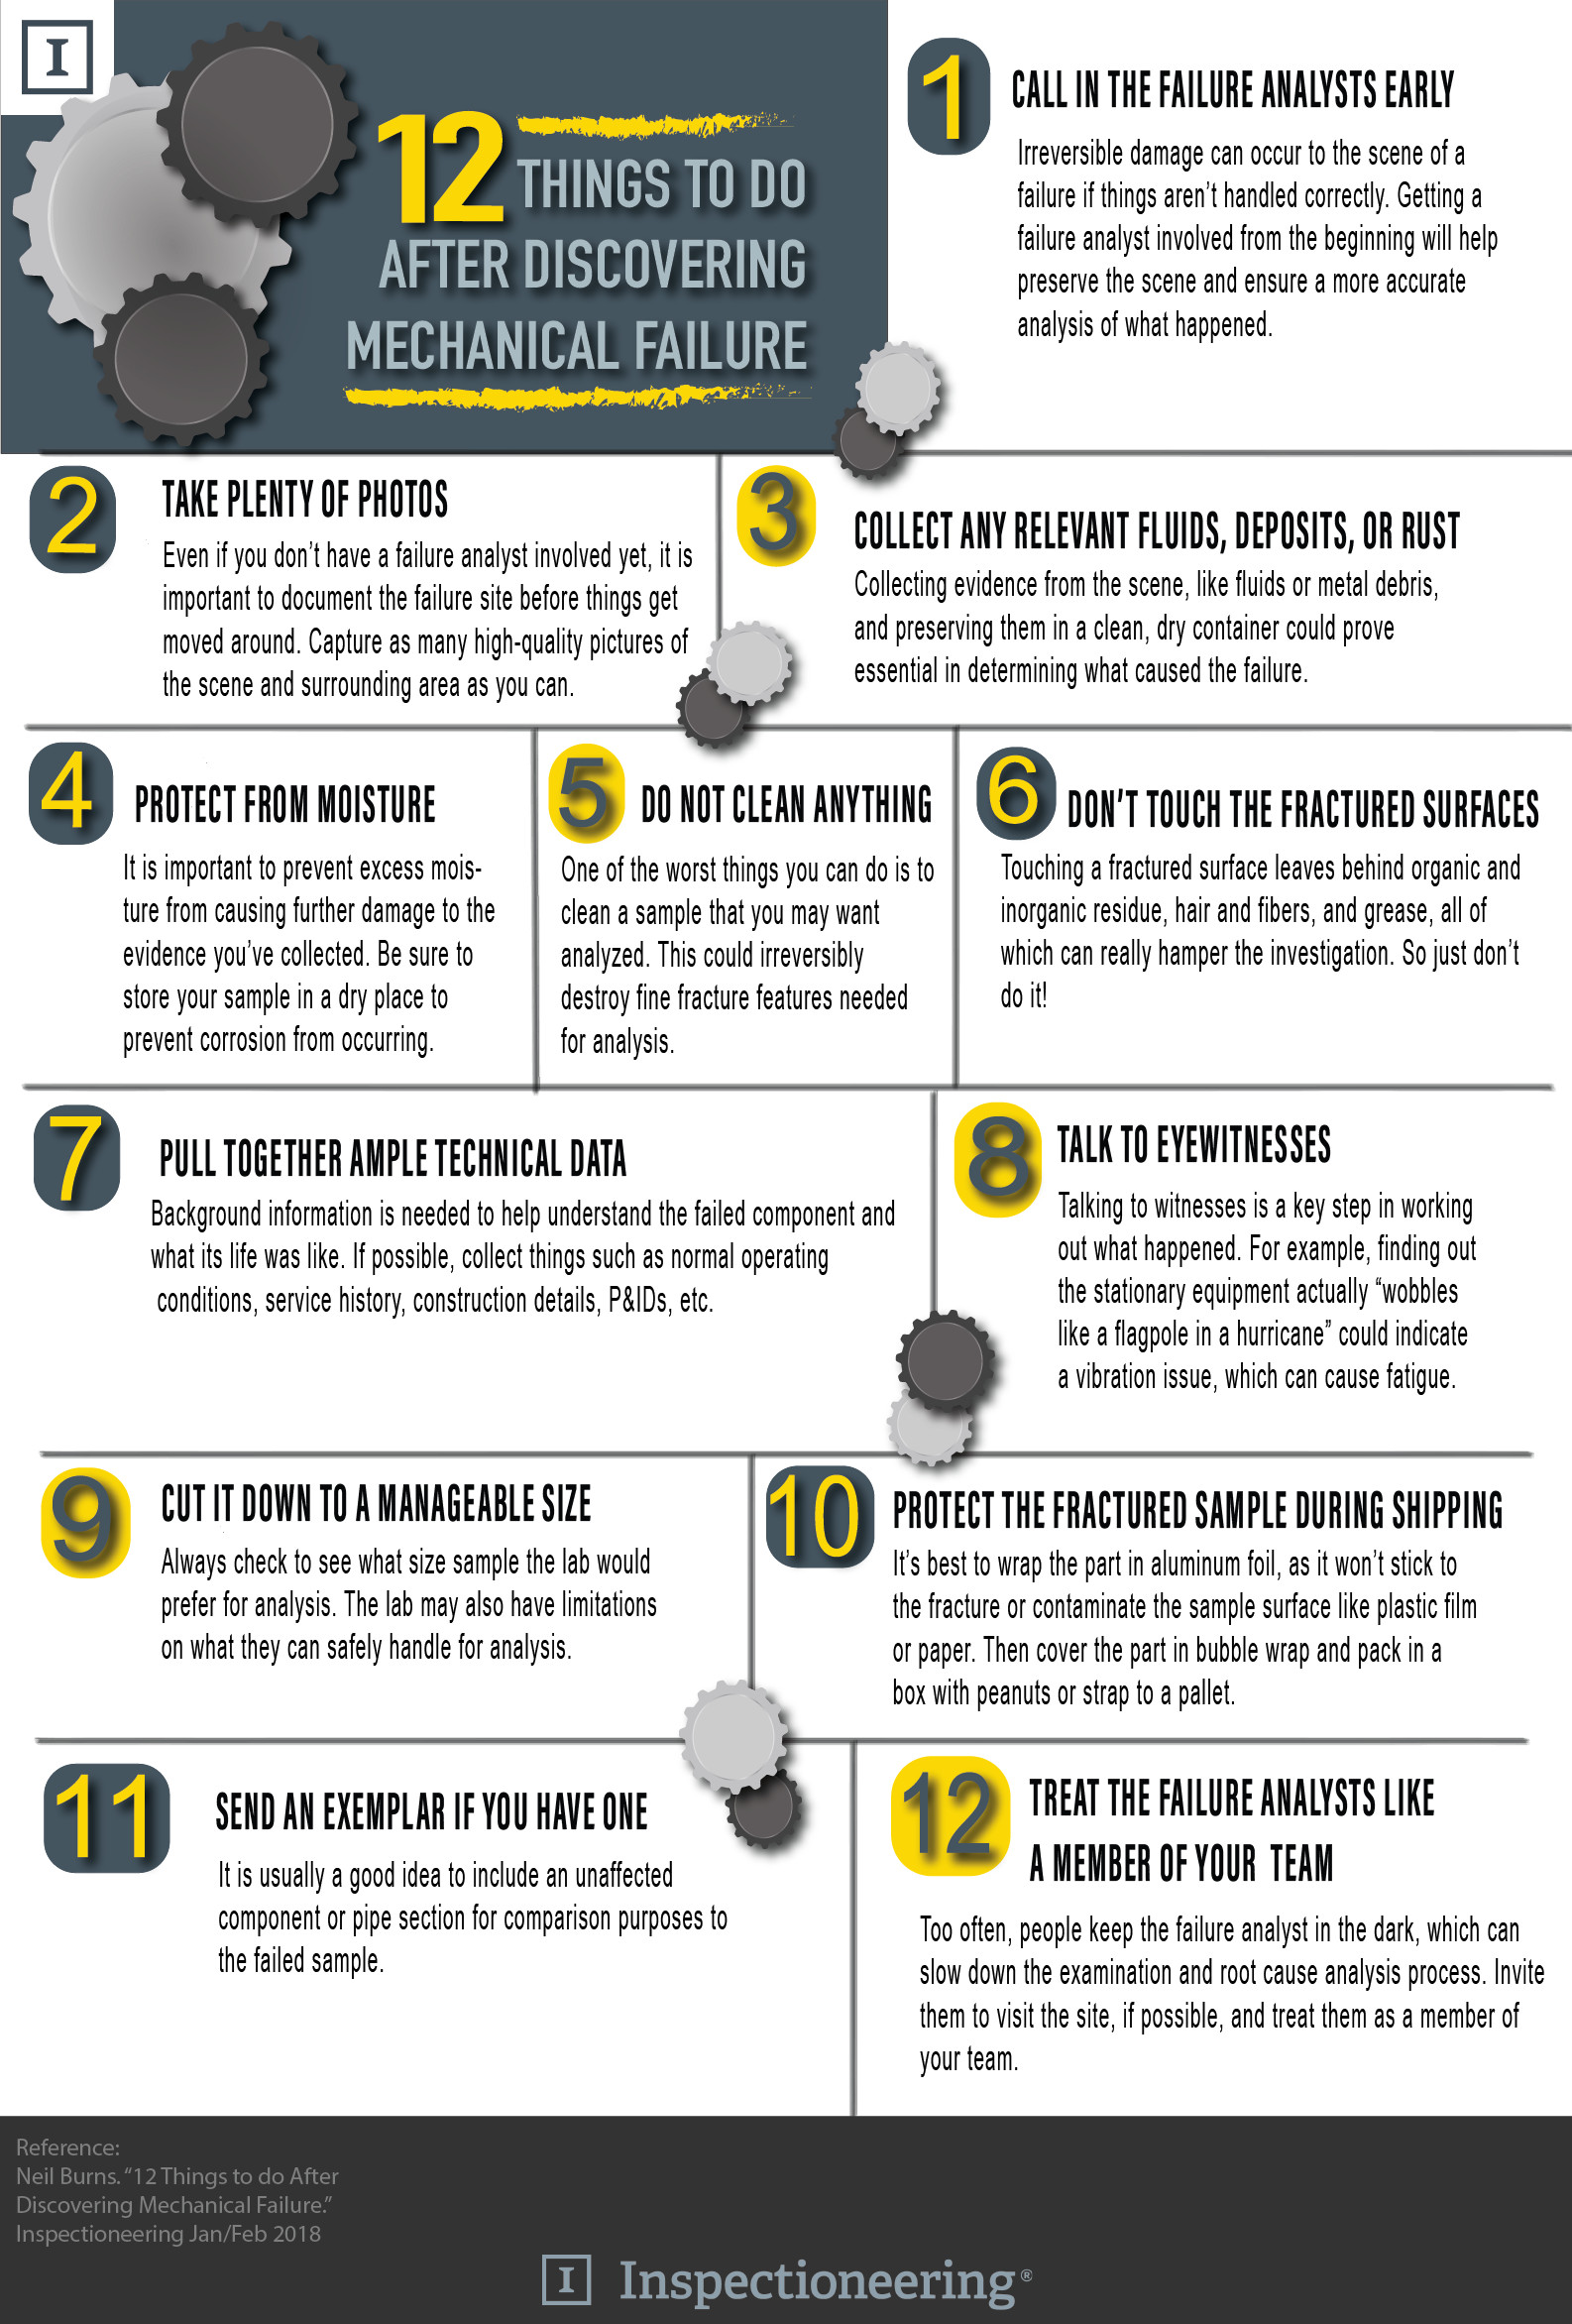 Infographic explaining 12 things to do after discovering mechanical failure